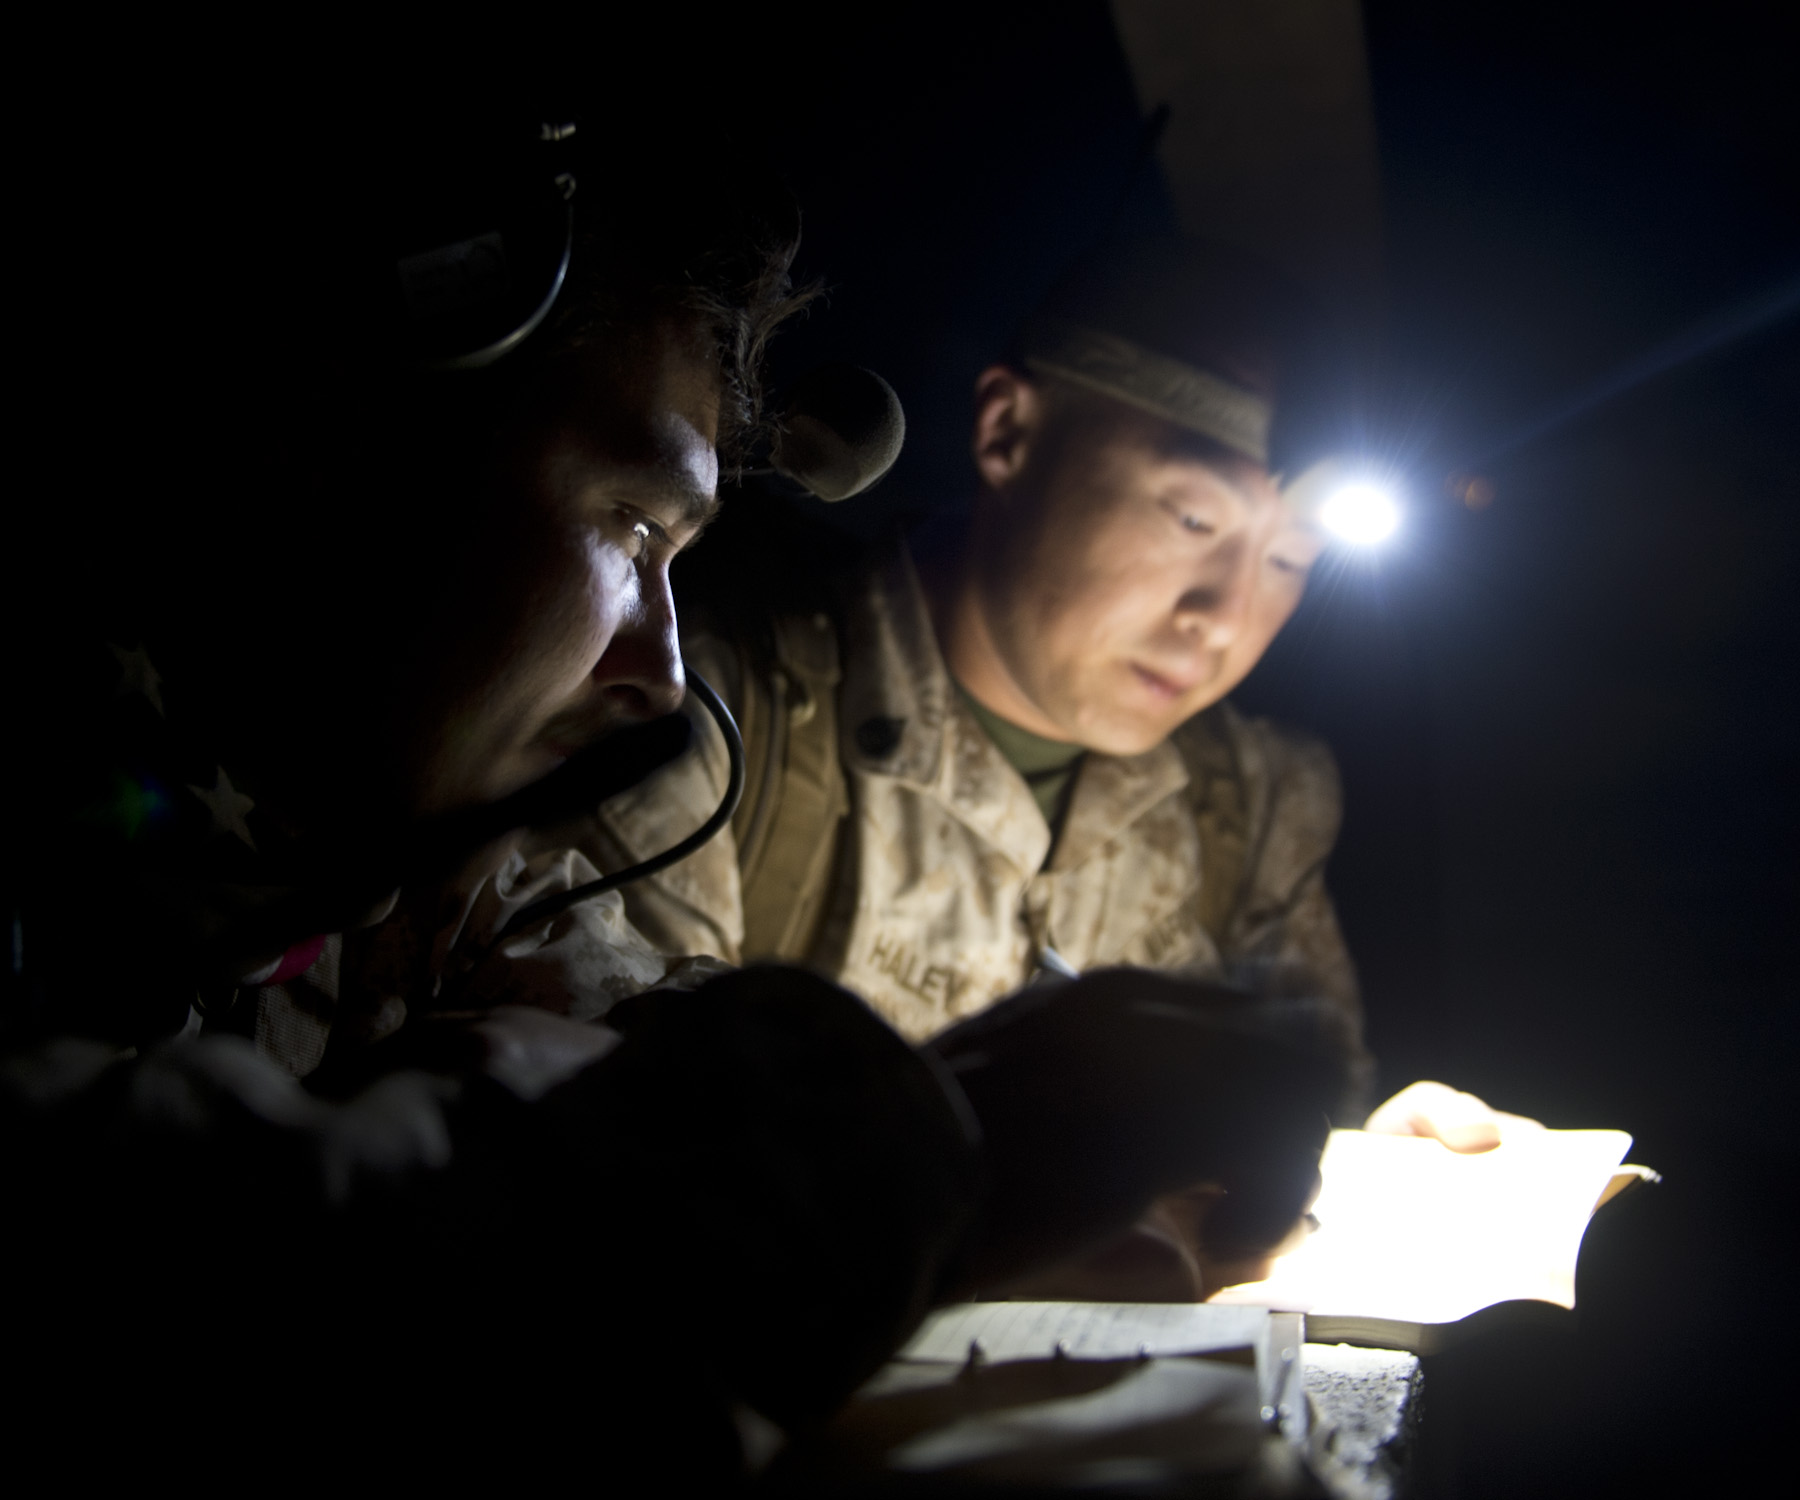 24th Marine Expeditionary Unit Joint Terminal Attack Control members read coordinates during a bilateral close air support training exercise in Arta, Djibouti, Feb. 4, 2015. The JTAC members work closely to communicate the best use of air power to provide CAS during military operations. The 24th MEU is embarked on the ships of the Iwo Jima Amphibious Ready Group and deployed to maintain regional security in the U.S. 5th Fleet area of operations. (U.S. Air Force photo by Staff Sgt. Kevin Iinuma)